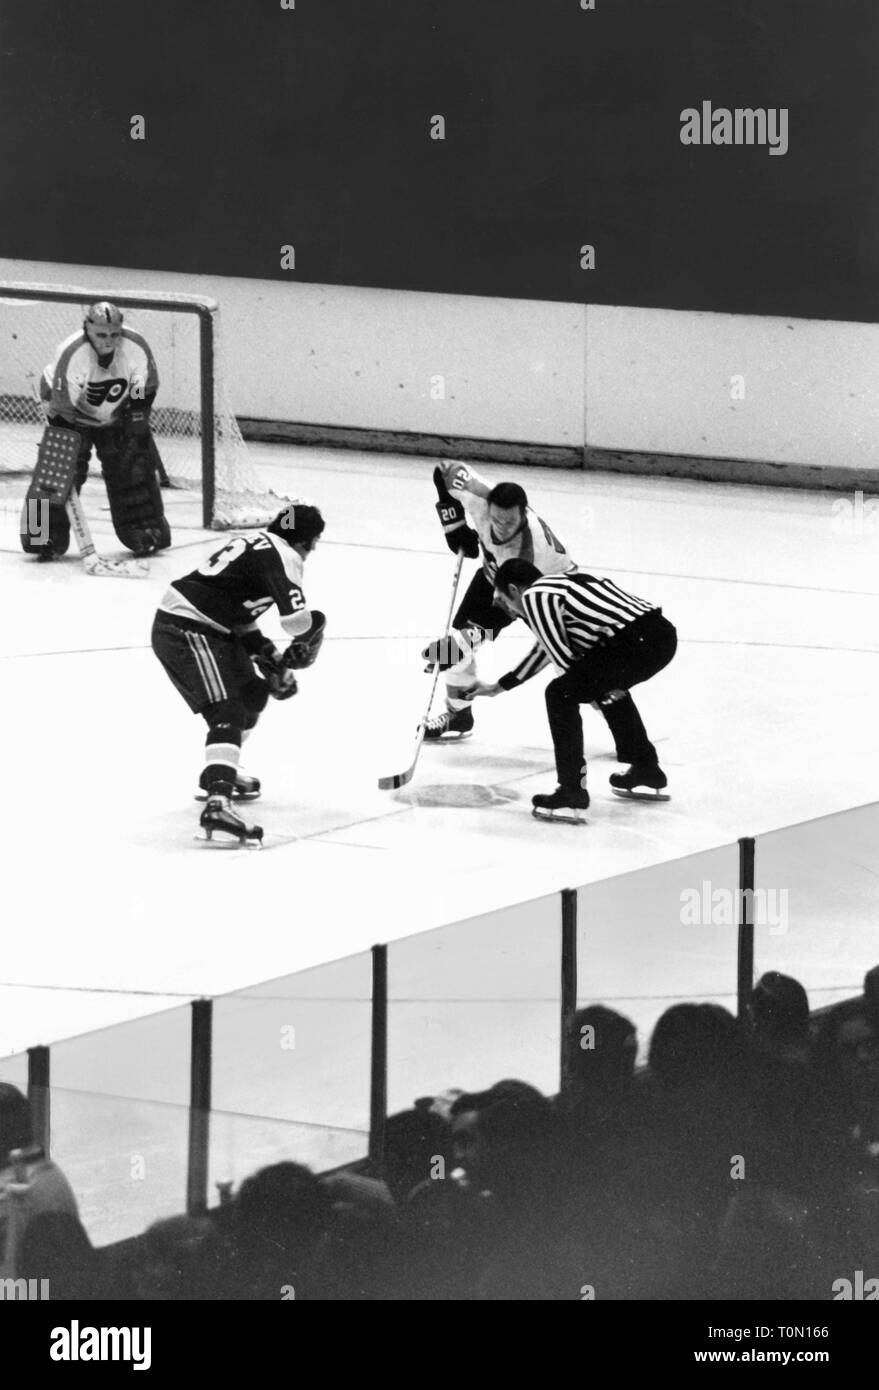 sports, winter sports, ice hockey, game of the Philadelphia flyer, faceoff in front of the goal, 1970s, Additional-Rights-Clearance-Info-Not-Available - Stock Image